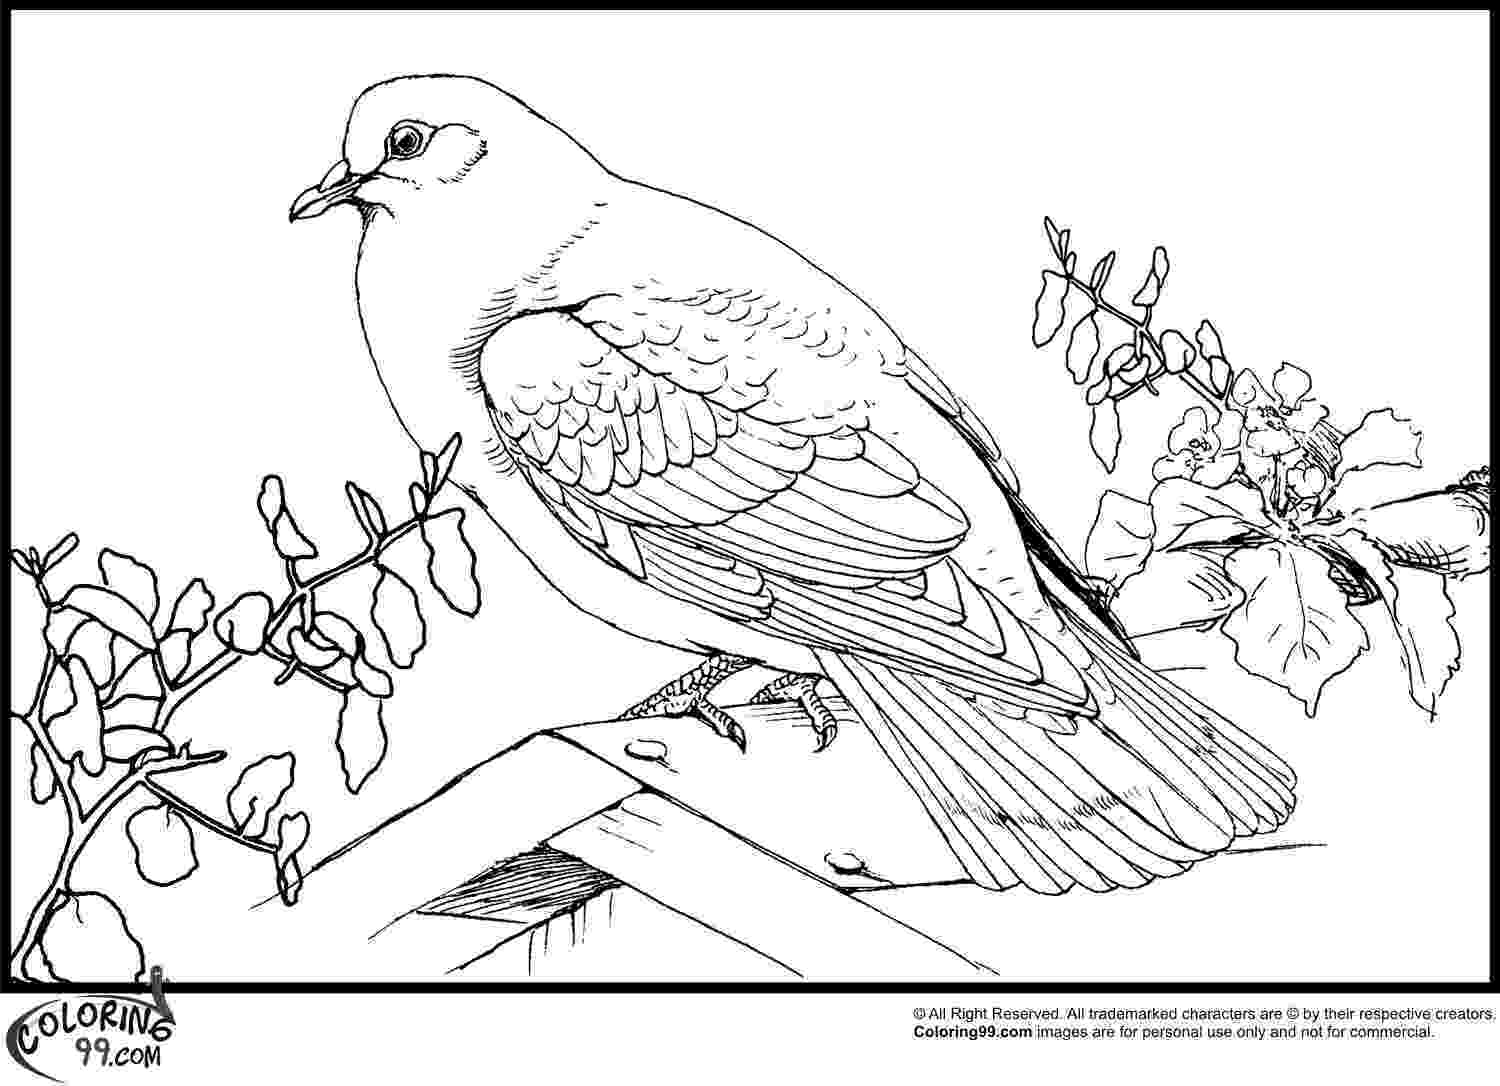 doves coloring pages love doves coloring pages hellokidscom pages coloring doves